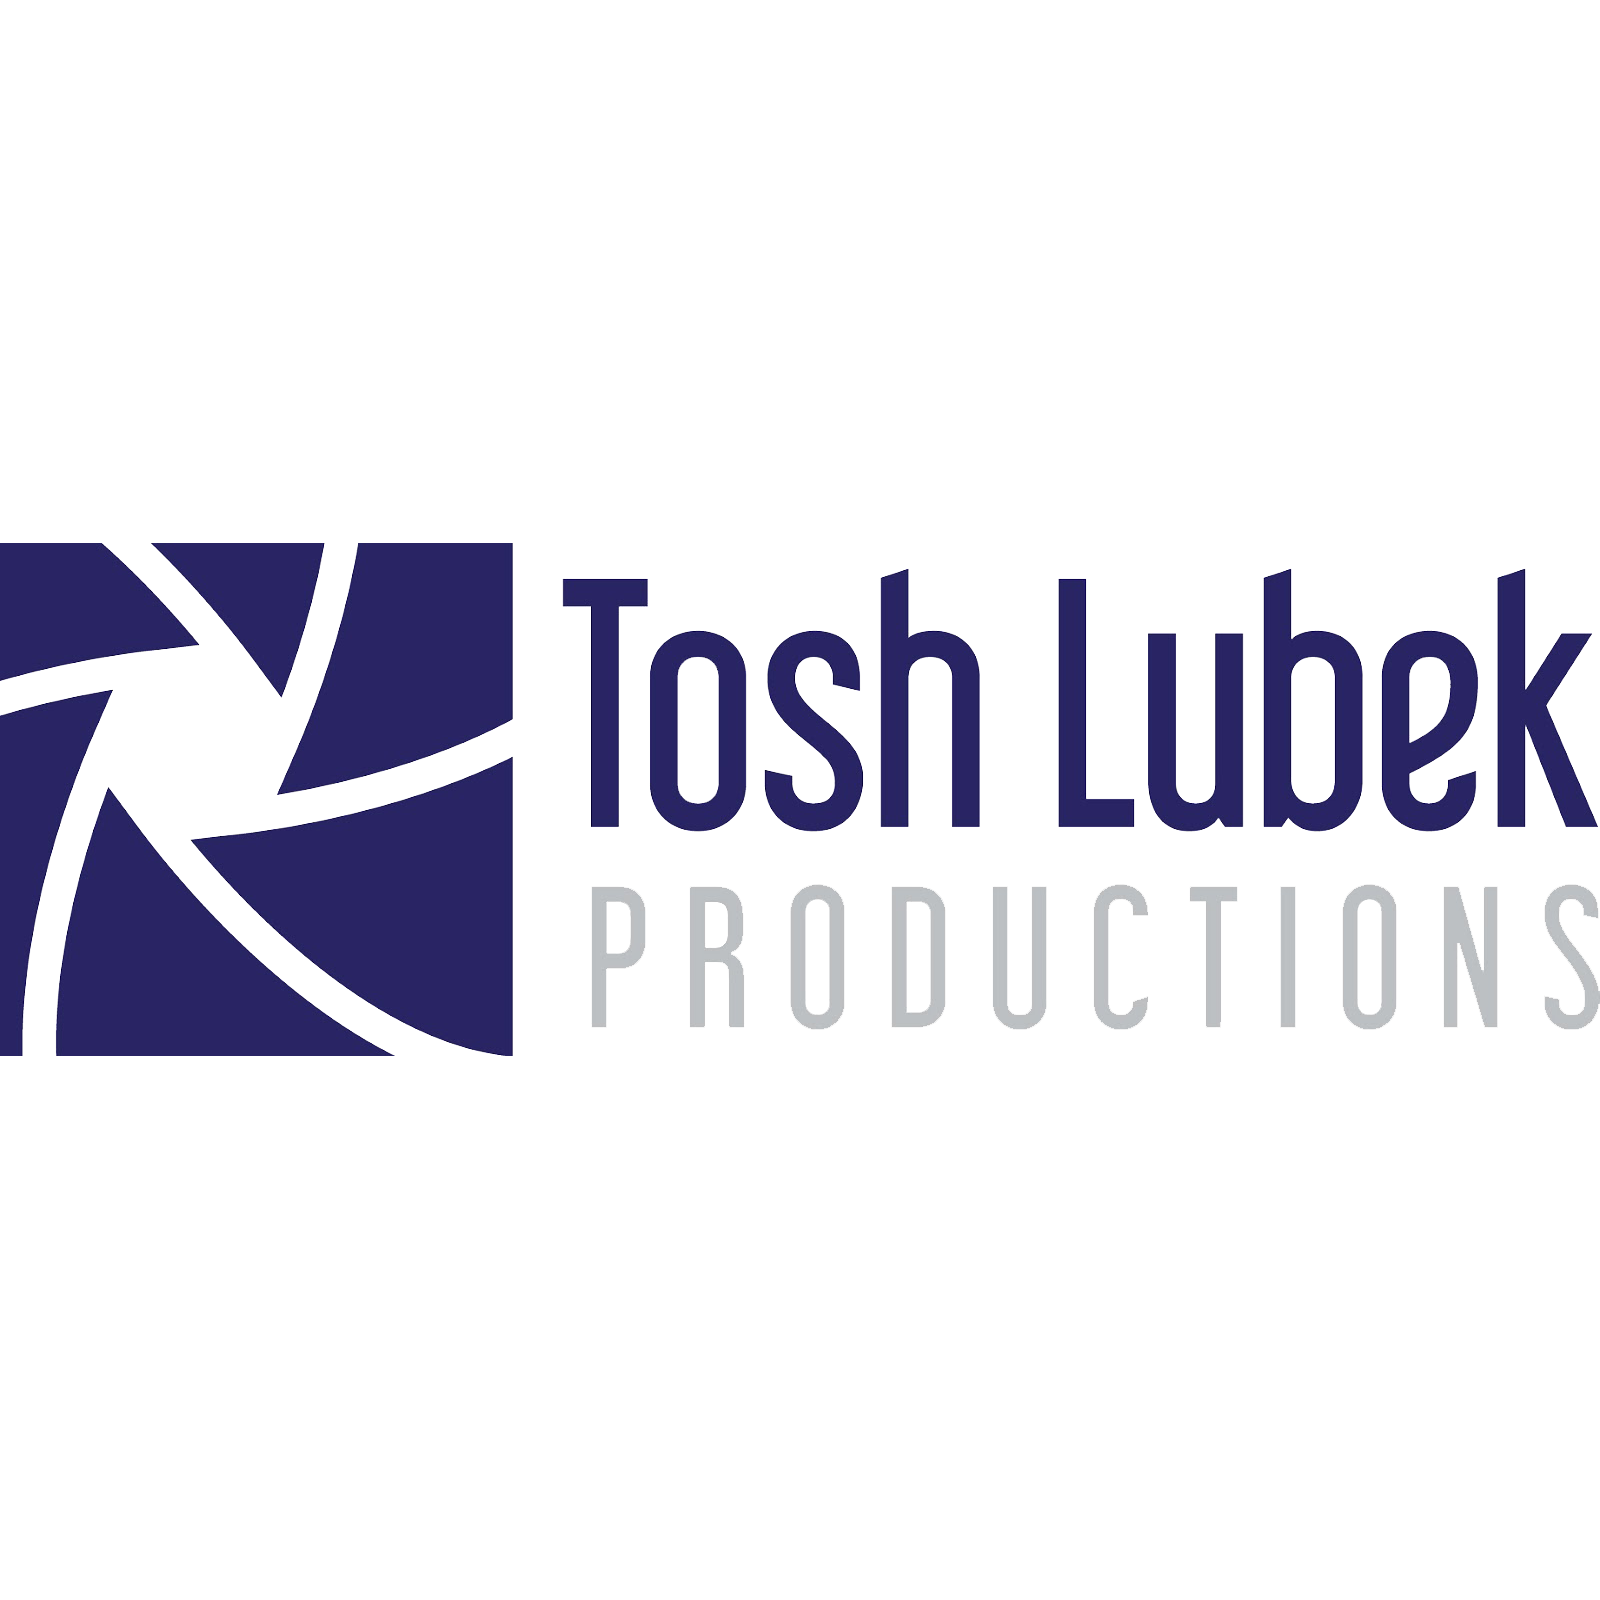 Tosh Lubek Productions